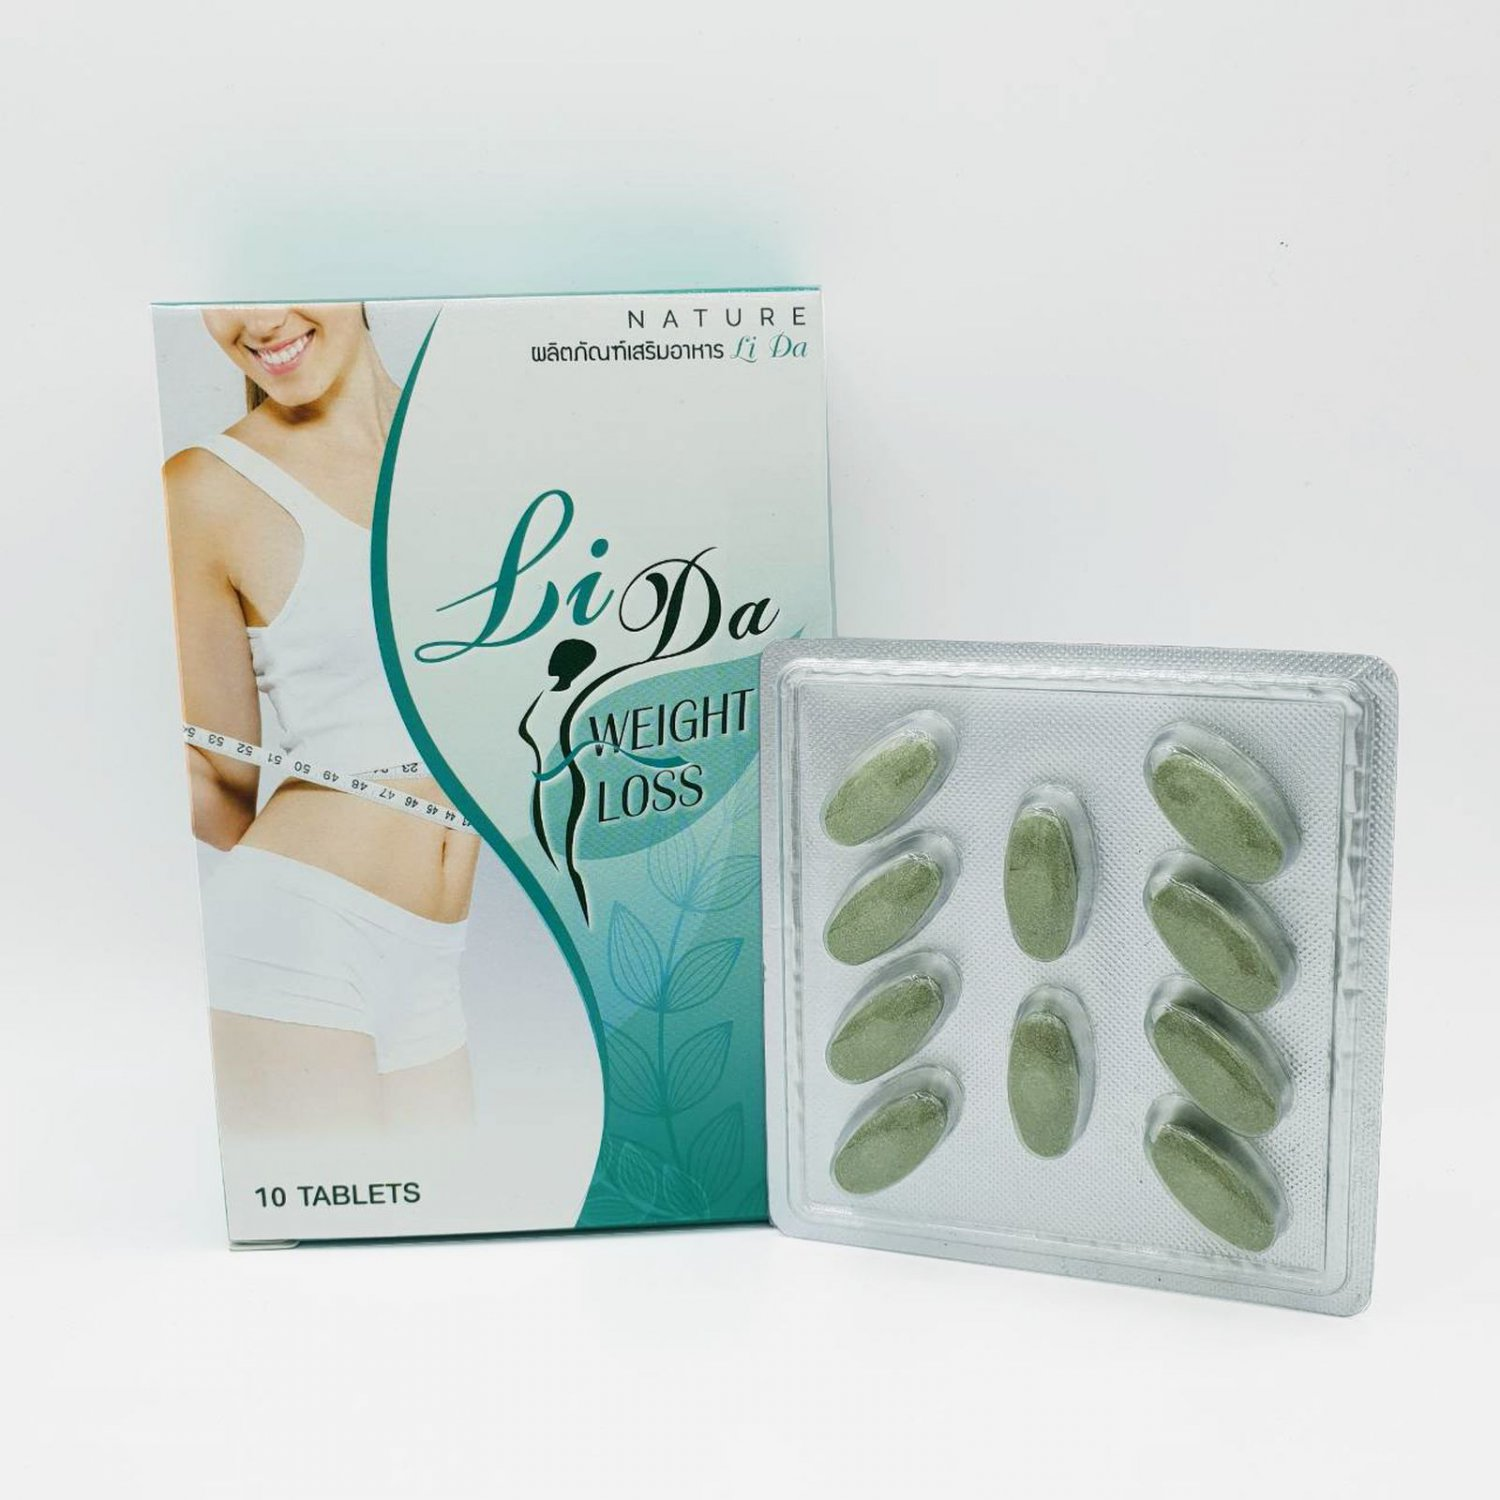 Lida Nature Help Lose Weight With firming Products For Health 10 Capsules